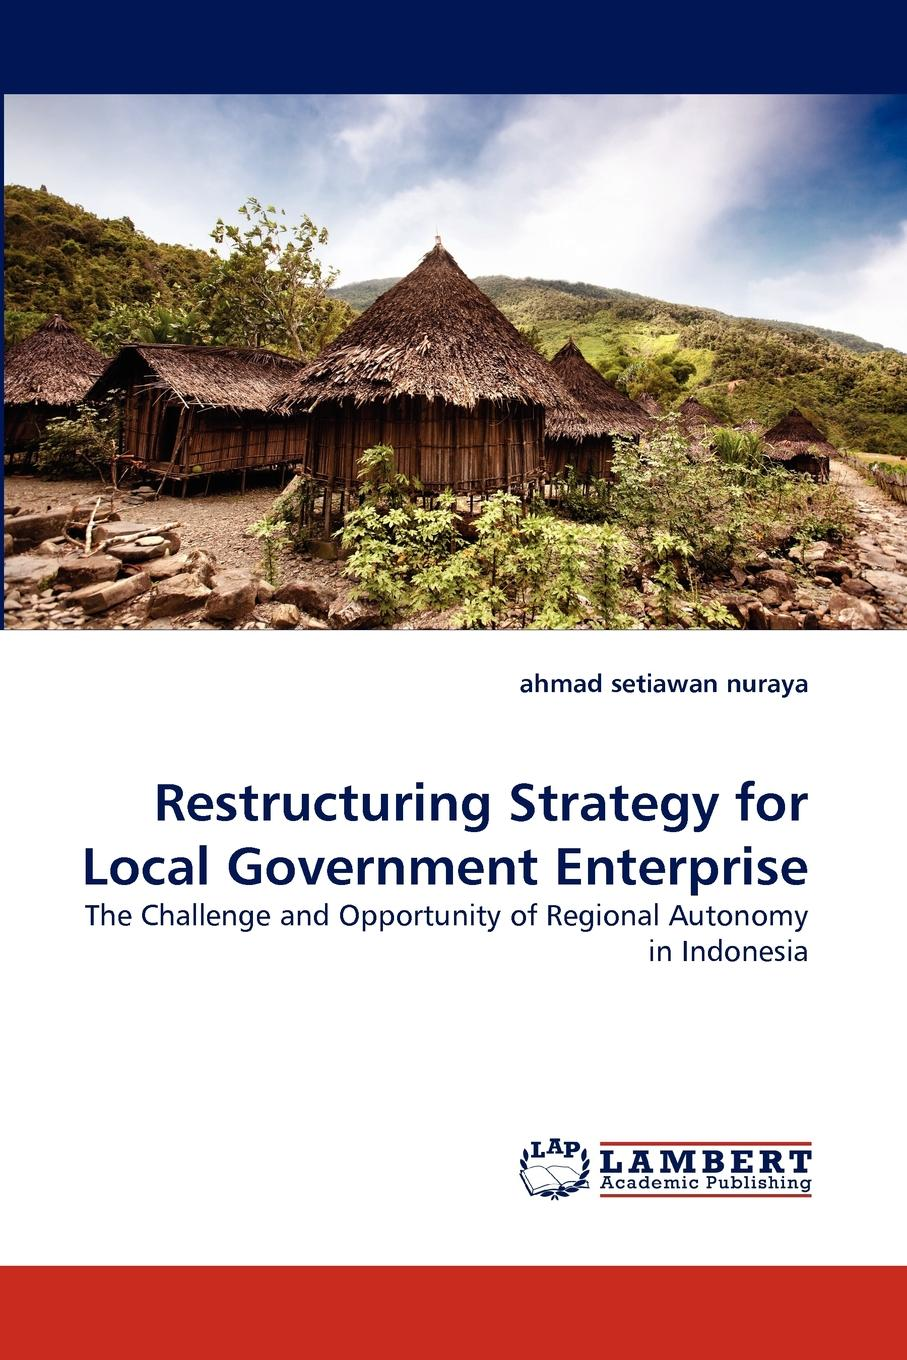 ahmad setiawan nuraya Restructuring Strategy for Local Government Enterprise regional ethnic autonomy in tibet